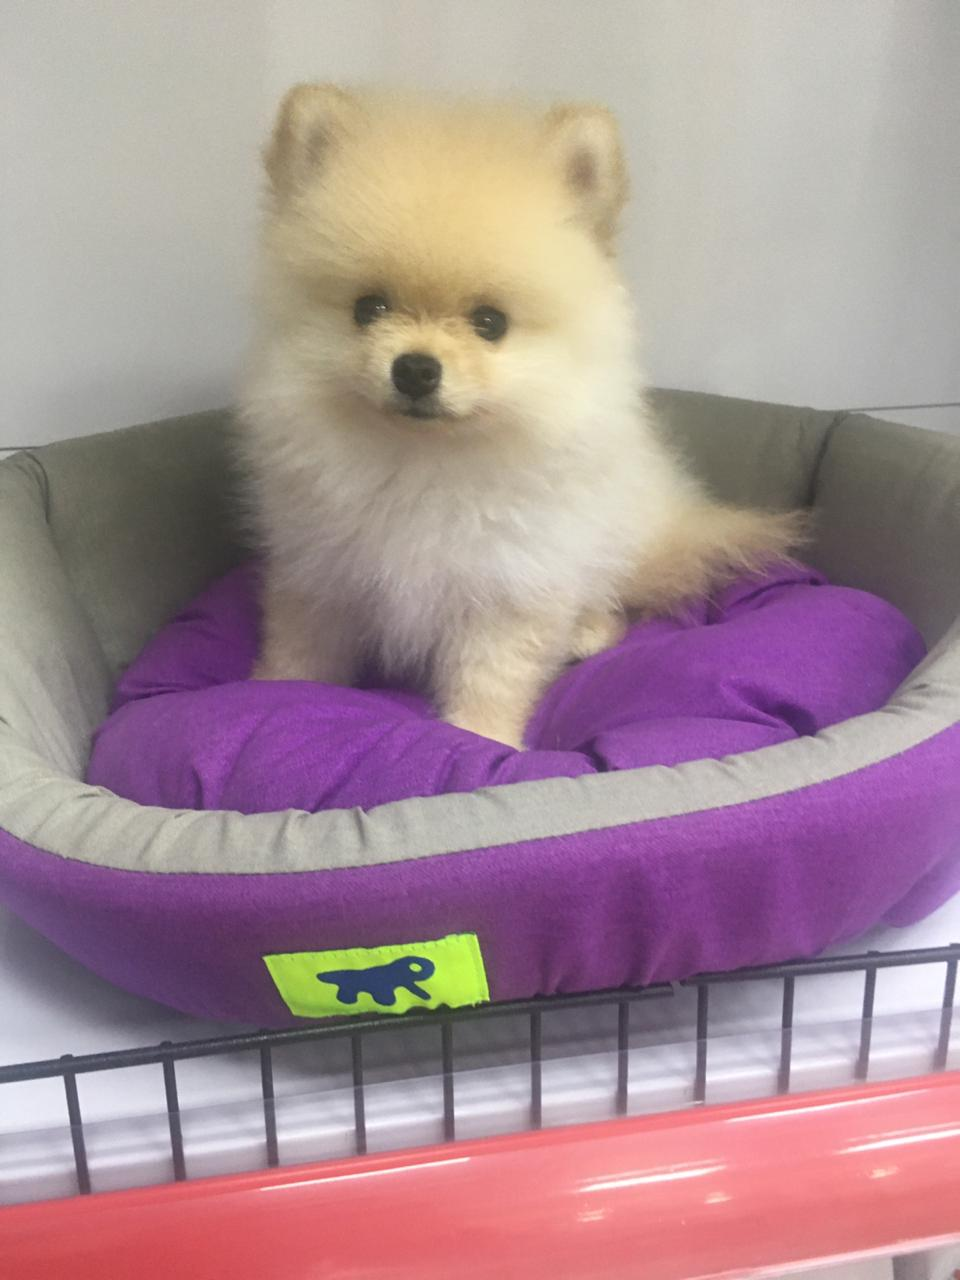 Pomeranian Puppy - 9500AED